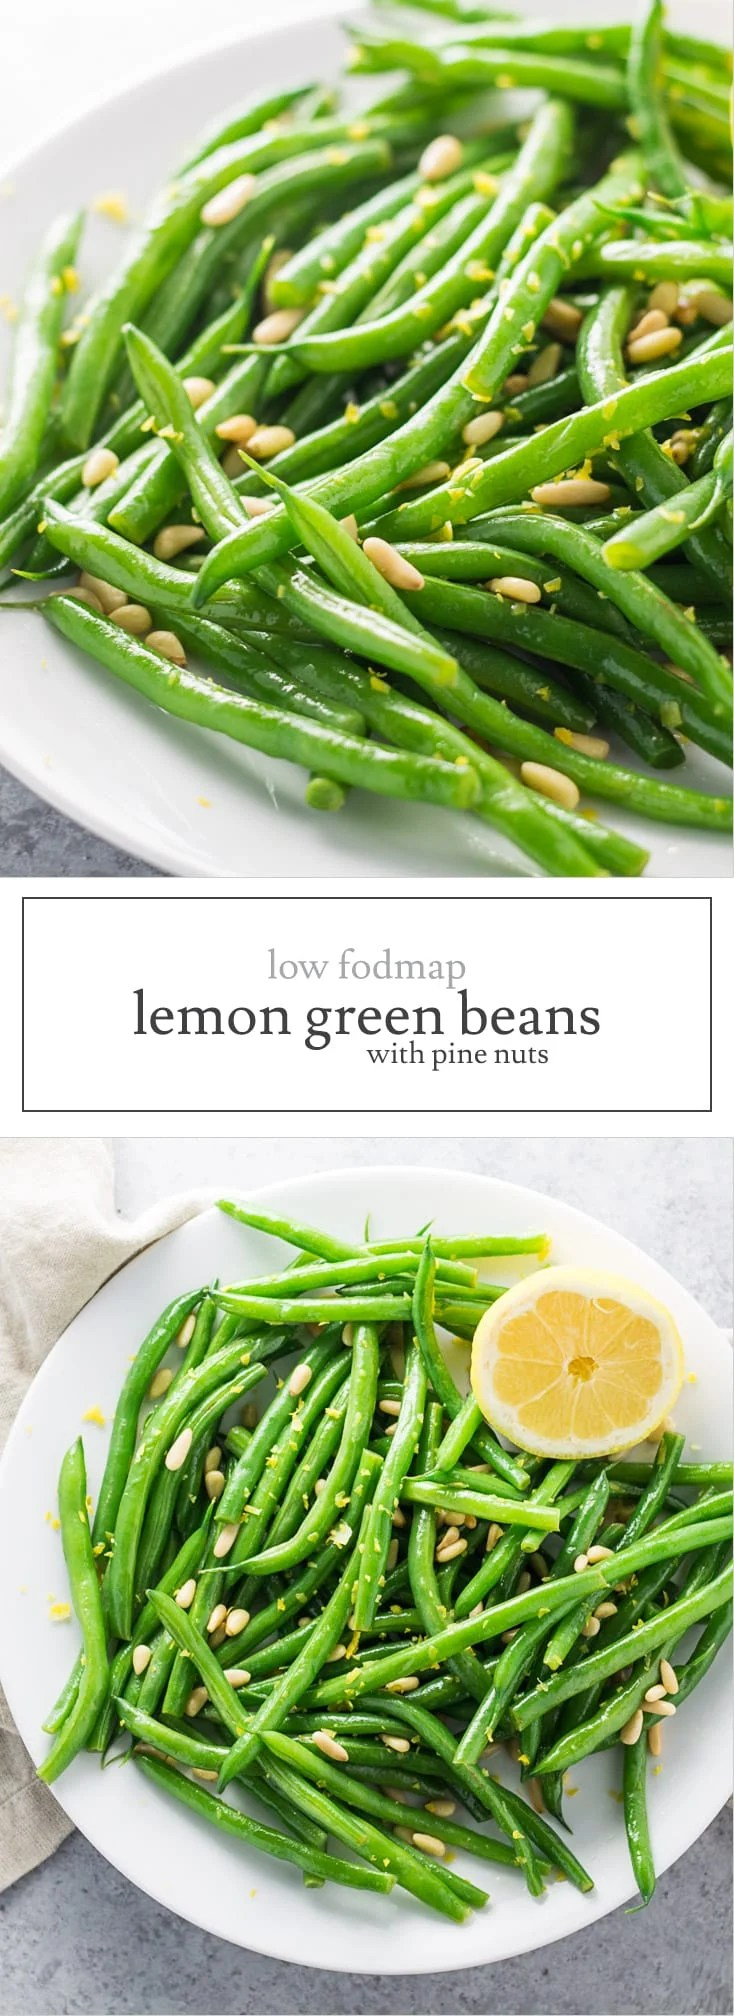 Refreshing with a little crunch, these Low Fodmap Lemon Green Beans with Pine Nuts are vegan, whole30-friendly and easy-to-make!